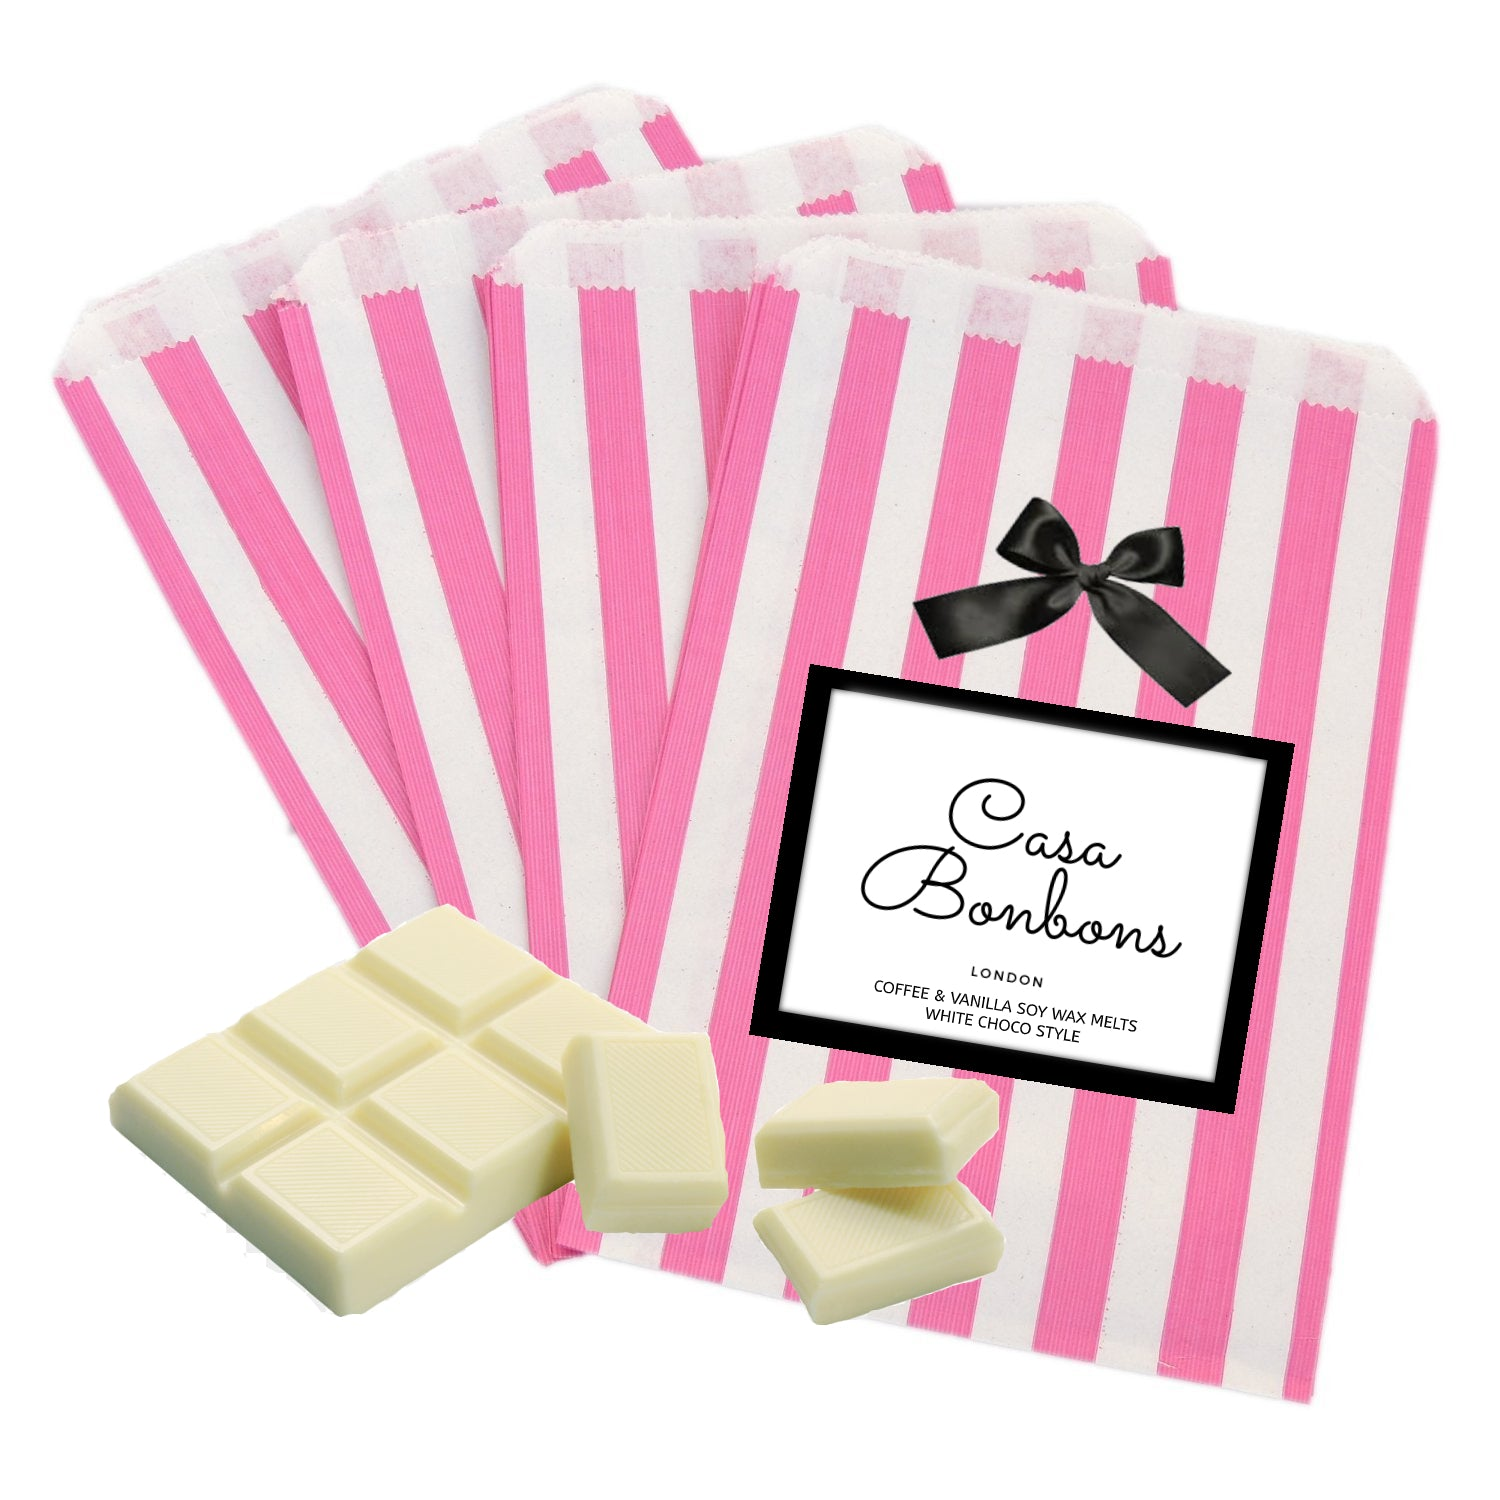 Coffee & Vanilla gentle scented white chocolate style Soy Wax Melts, PRE-ORDER delivery around 15th of December - natoorio